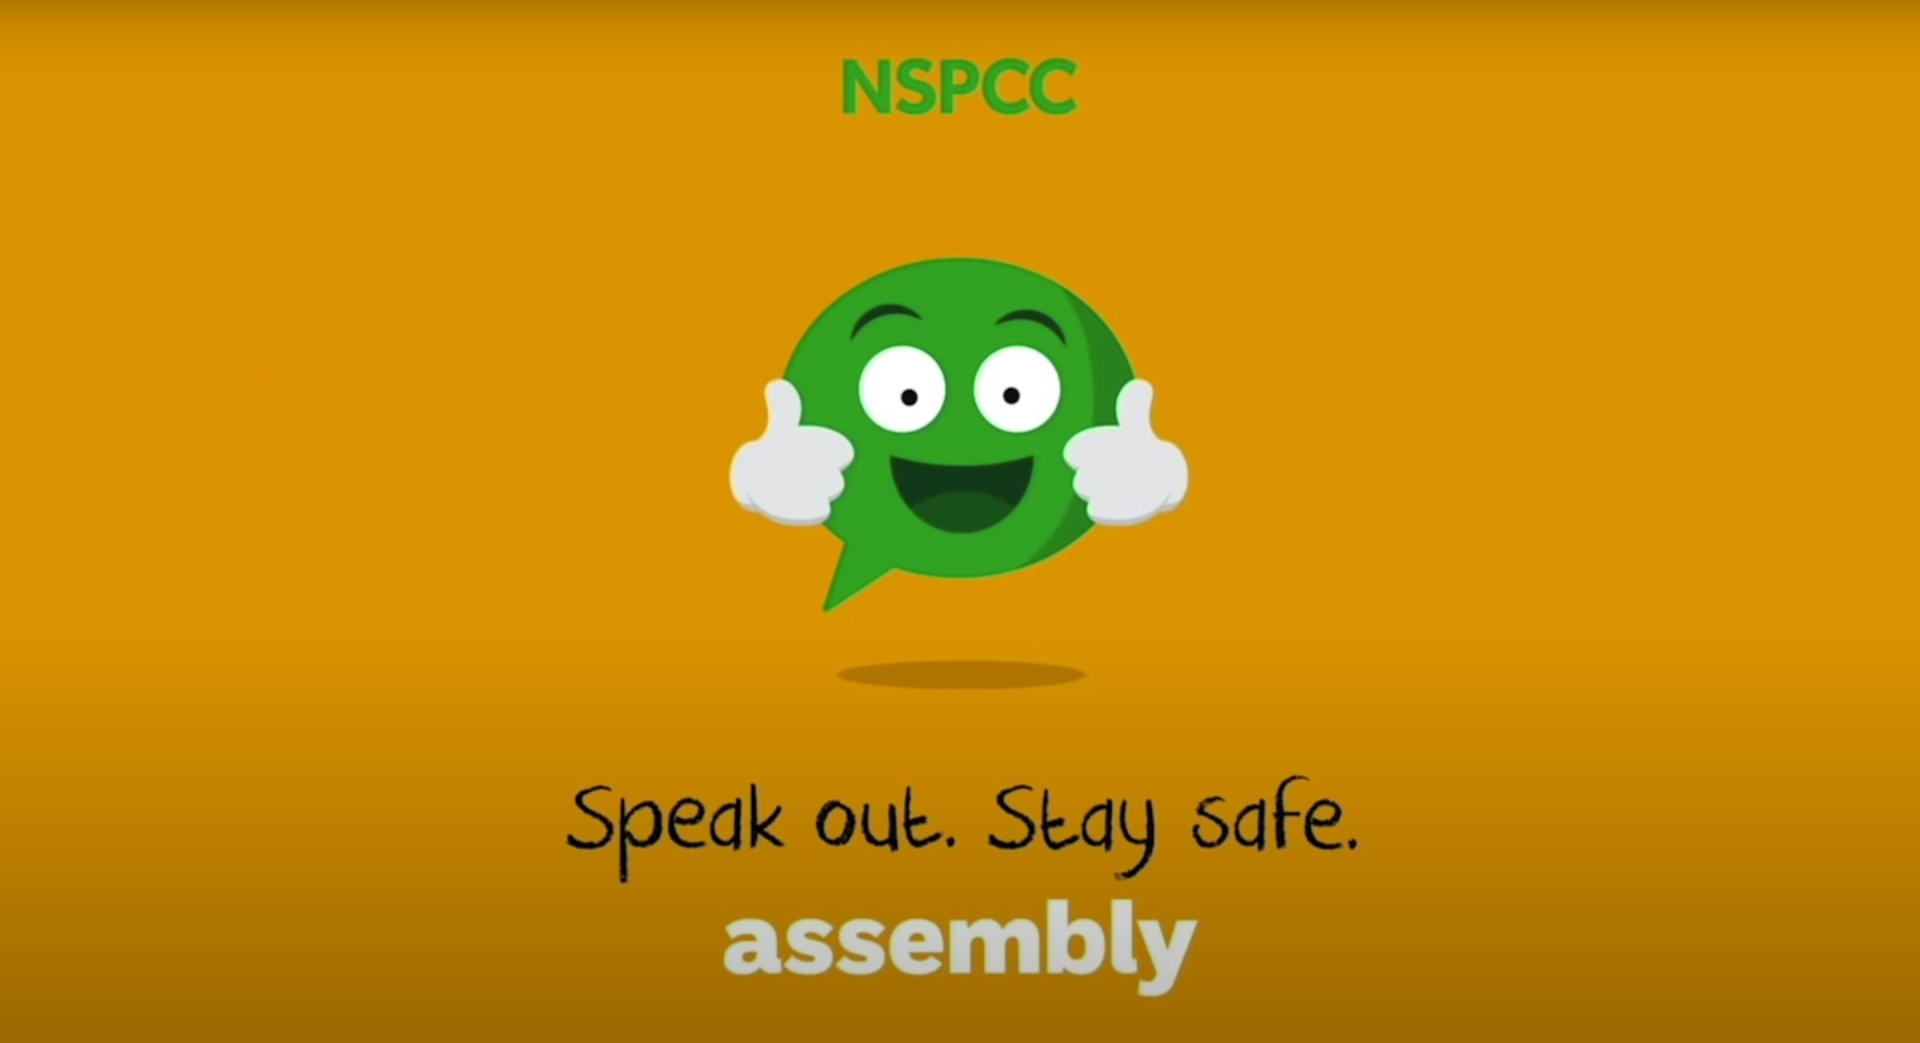 Link to the Youtube video for the NSPCC Virtual Assembly